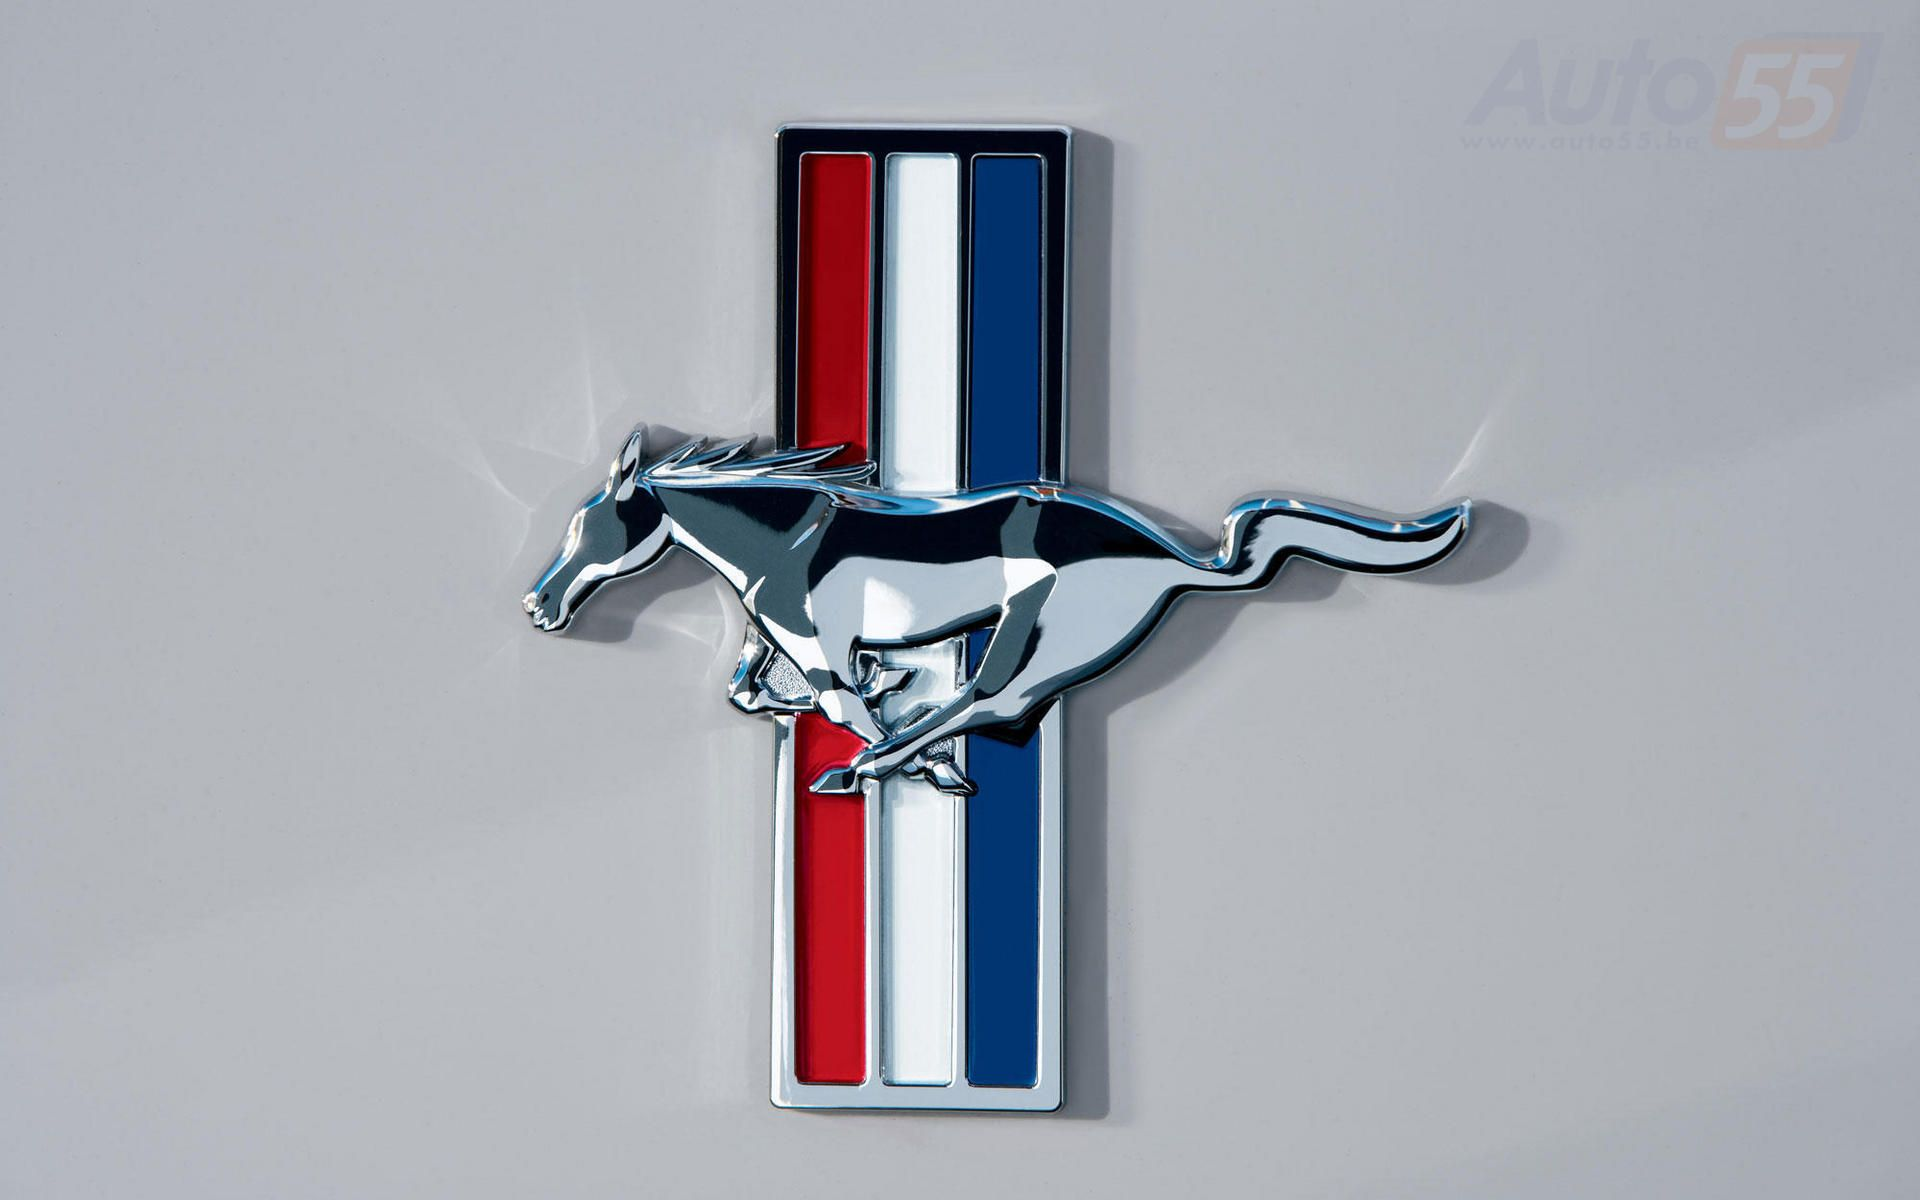 Ford Mustang Logo Wallpapers - Wallpaper Cave